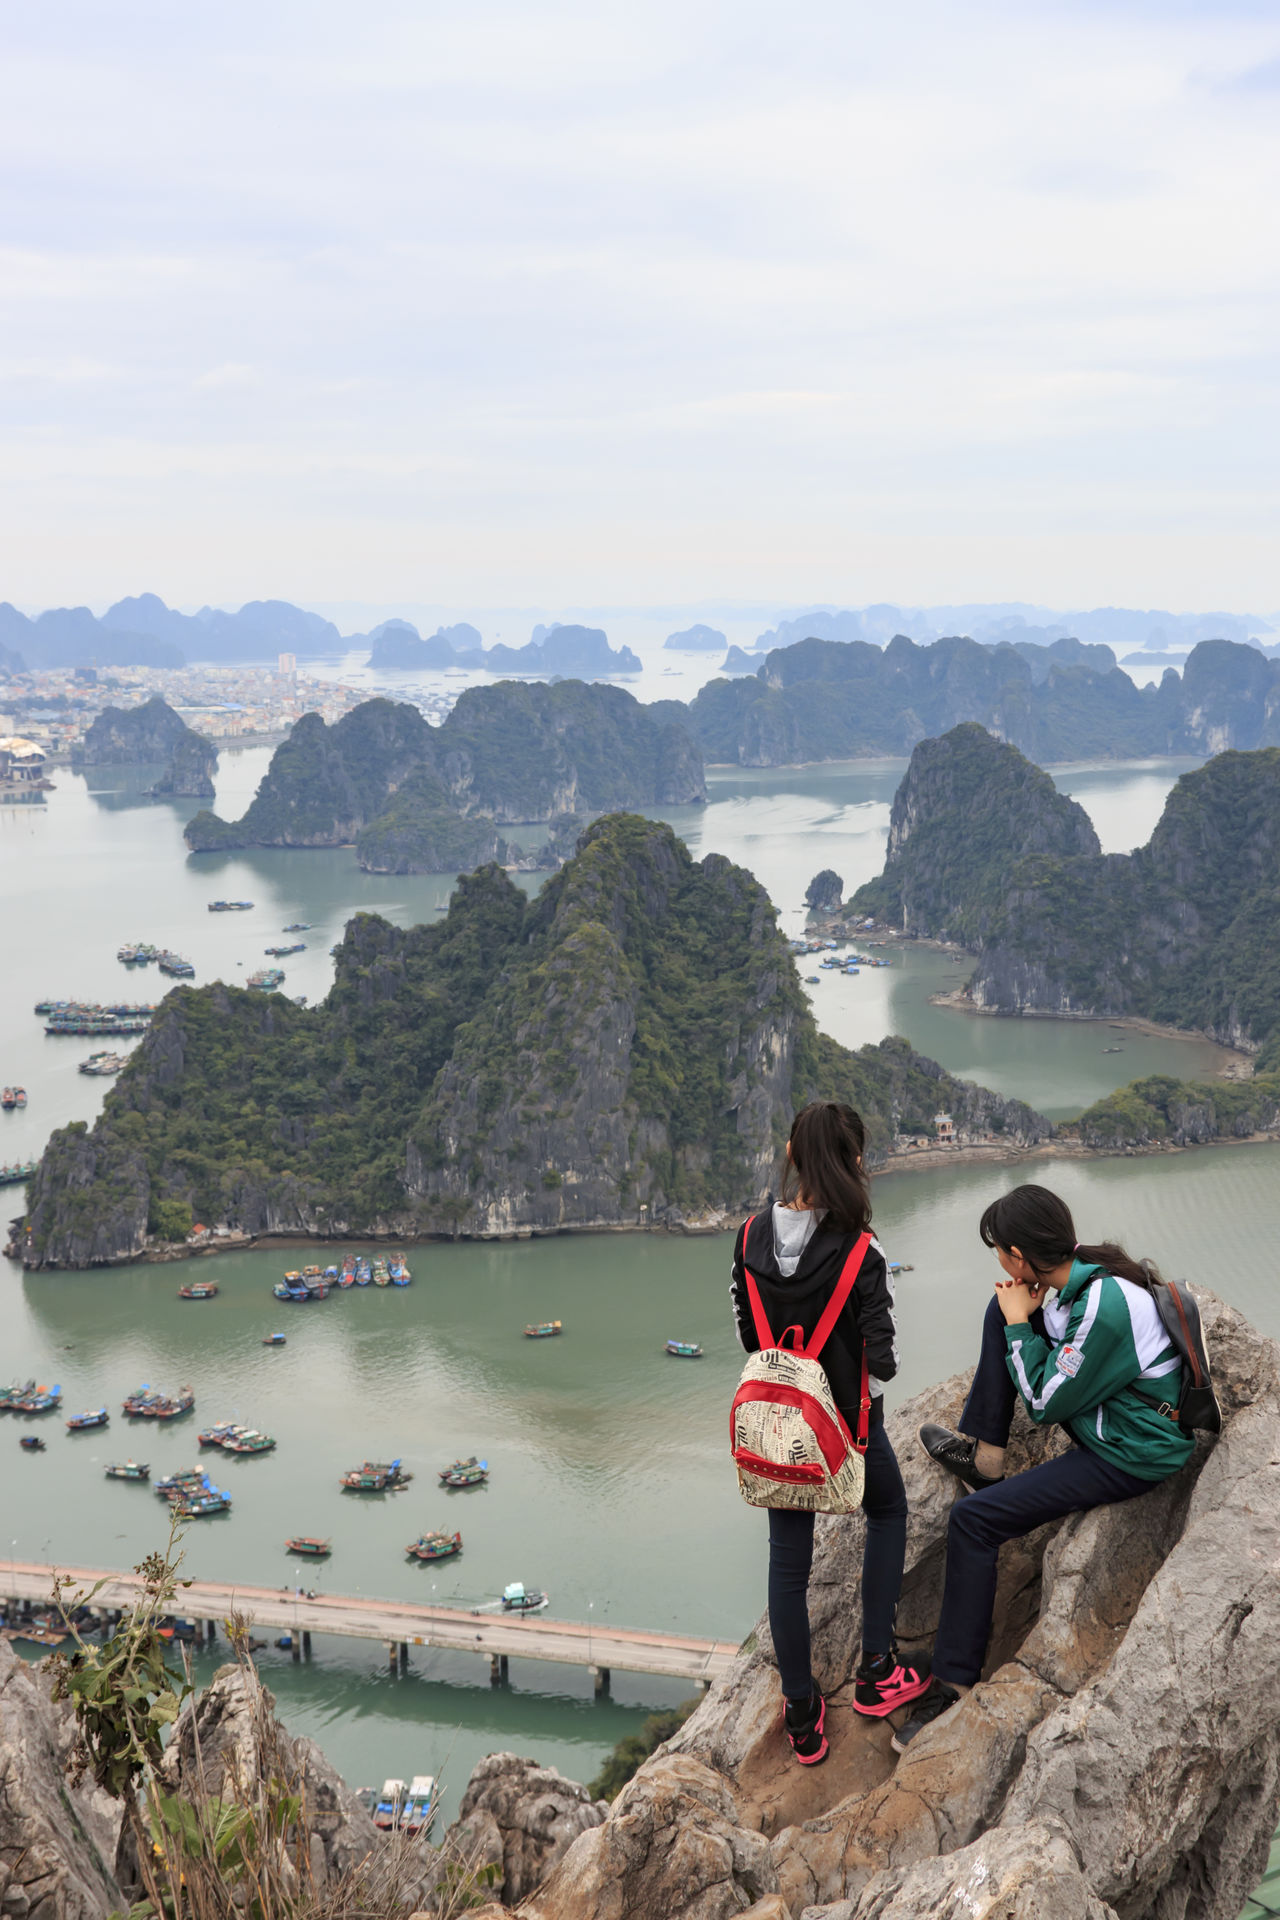 Beautiful stock photos of vietnam, two people, water, real people, sea